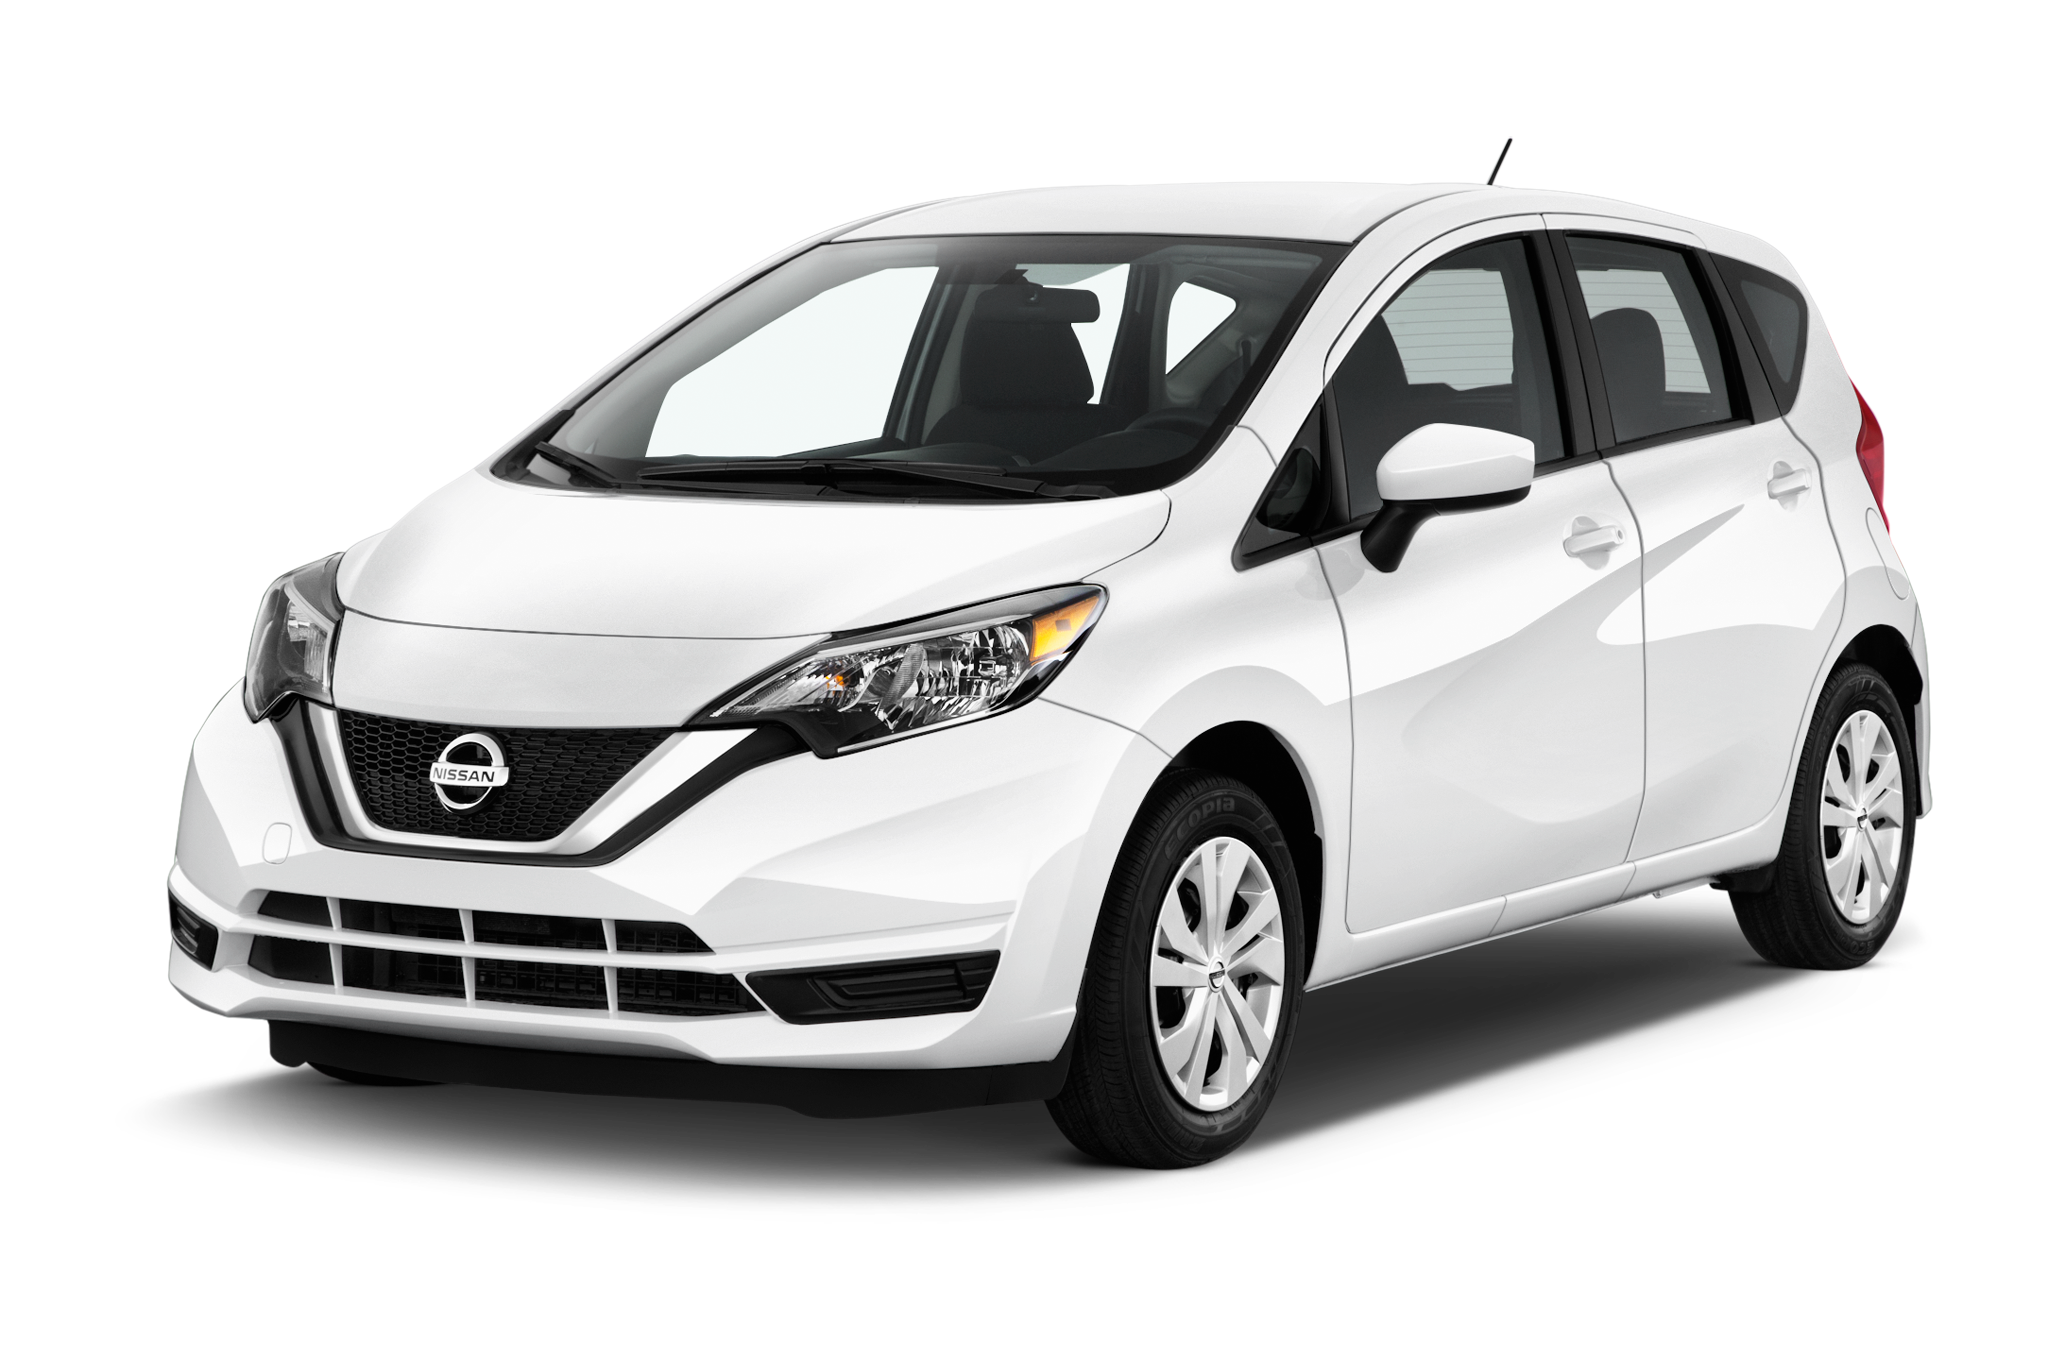 Nissan Versa Reviews: Research New & Used Models | Motortrend